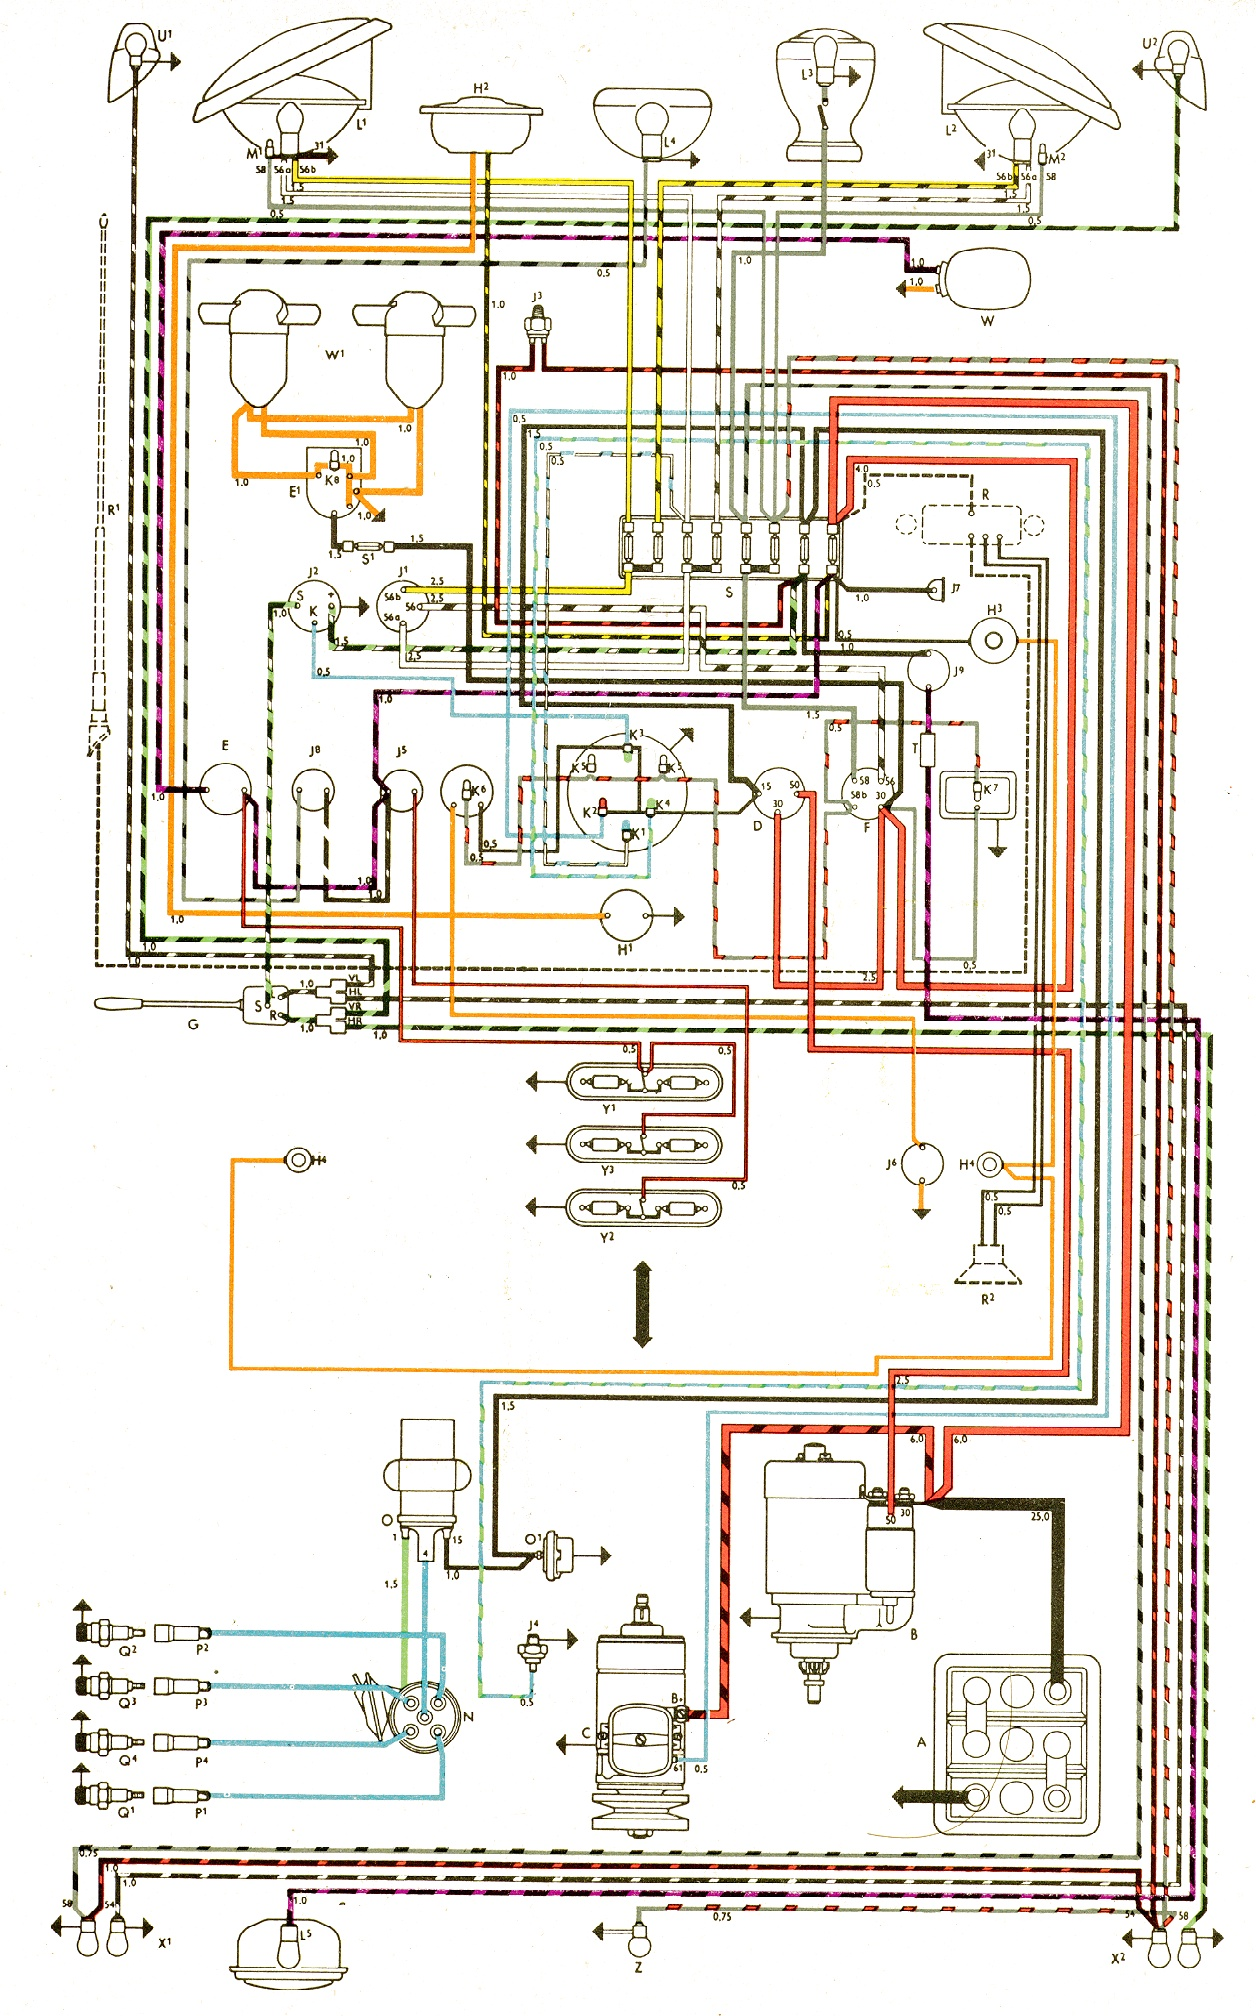 bus 62 vintagebus com vw bus (and other) wiring diagrams vw engine wiring diagram at gsmportal.co